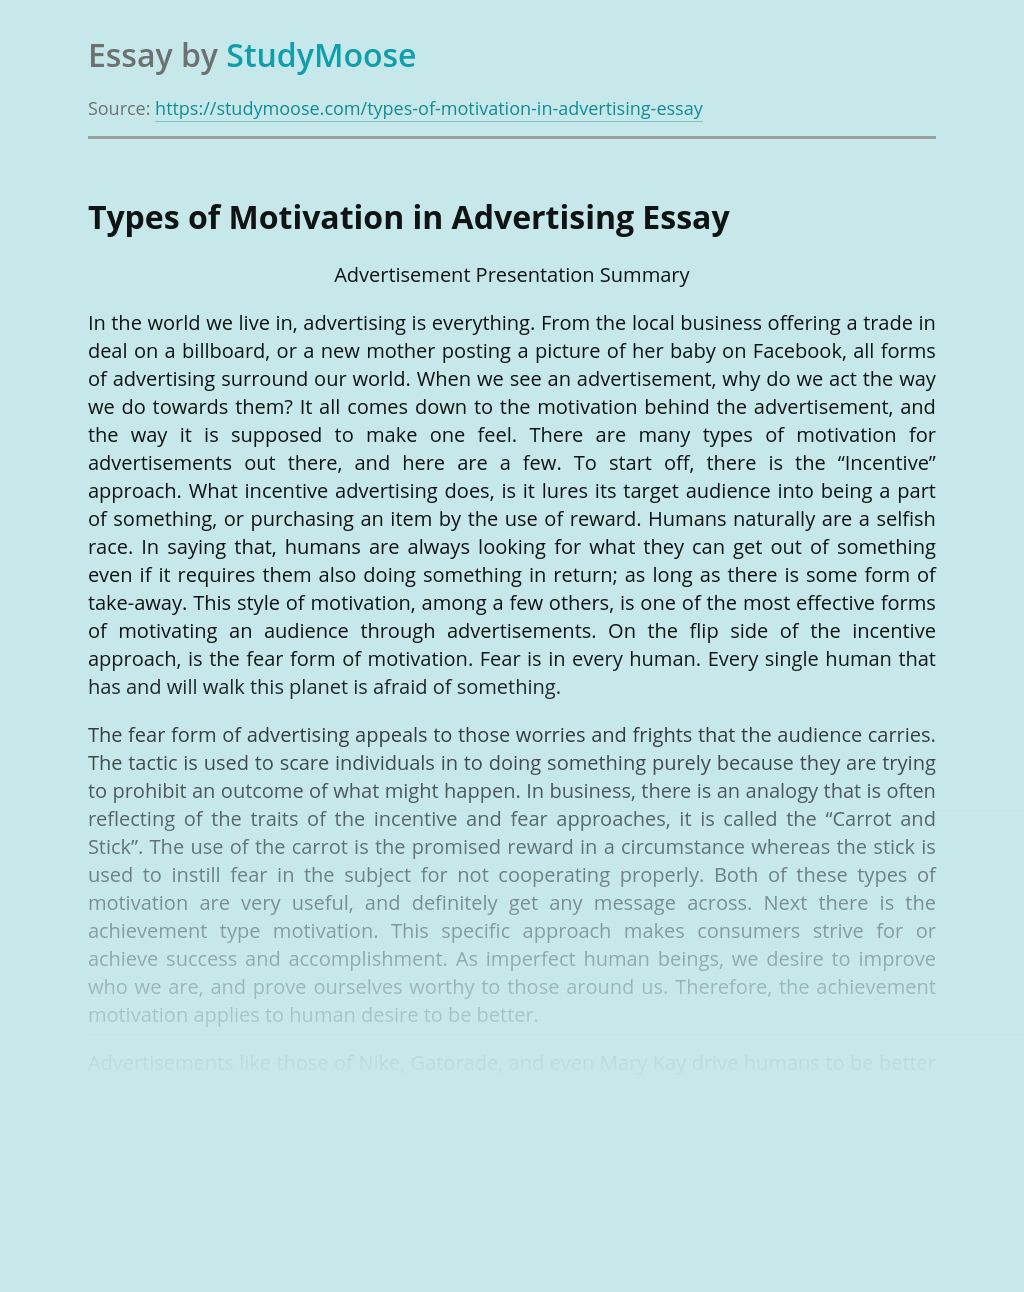 Types of Motivation in Advertising